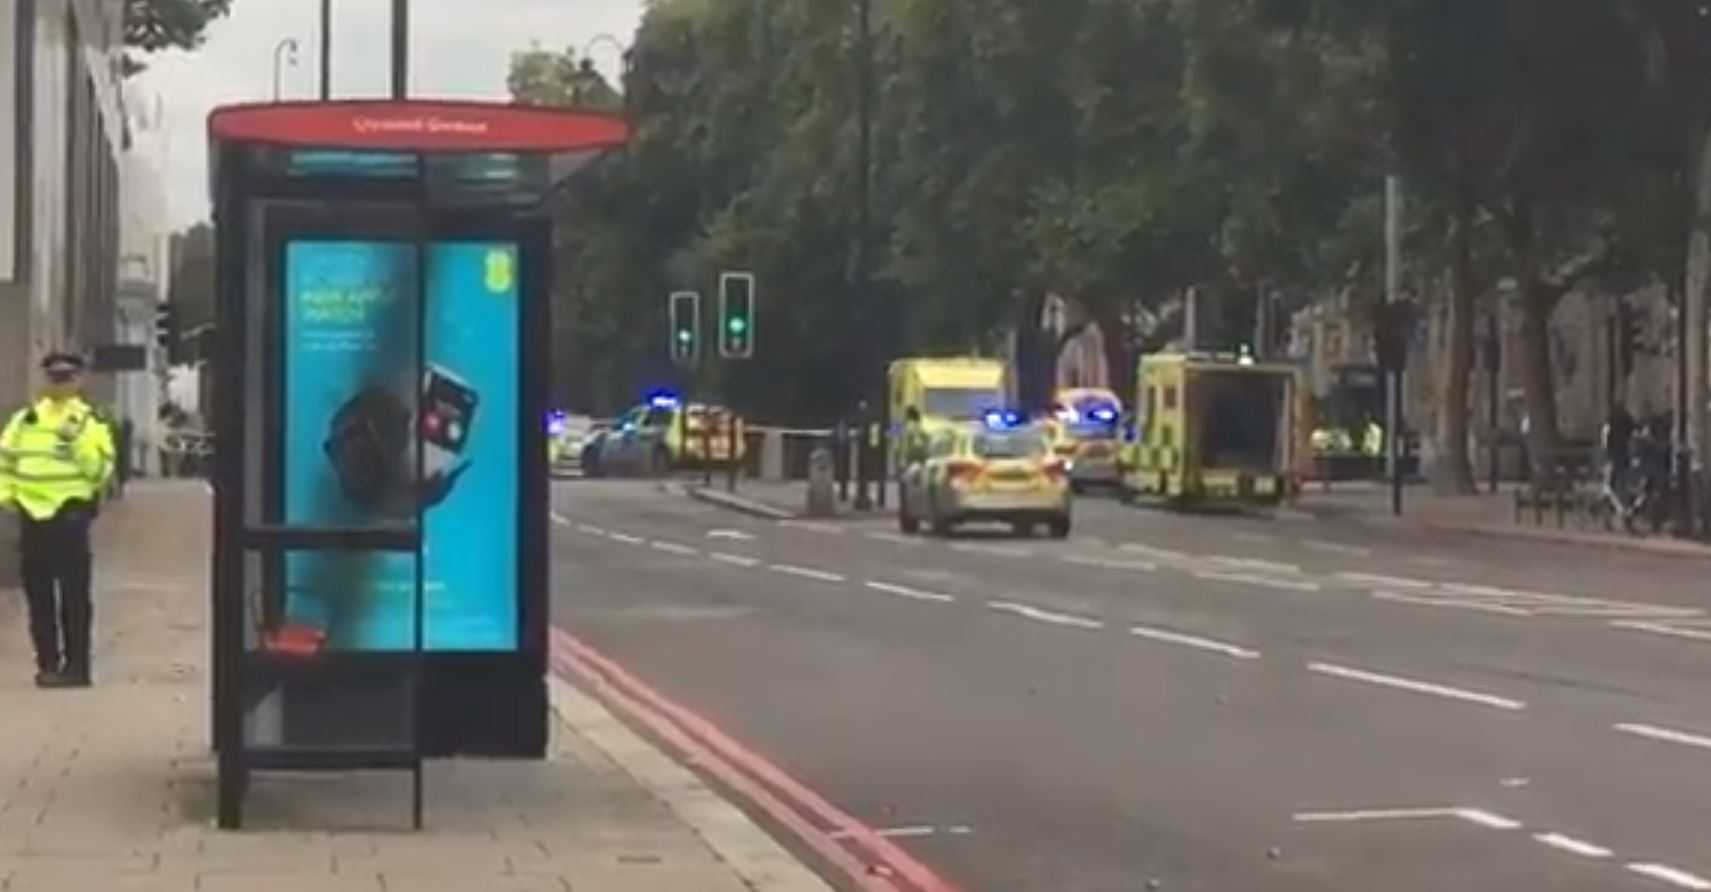 London police arrest man after auto  hits, injures pedestrians near museum